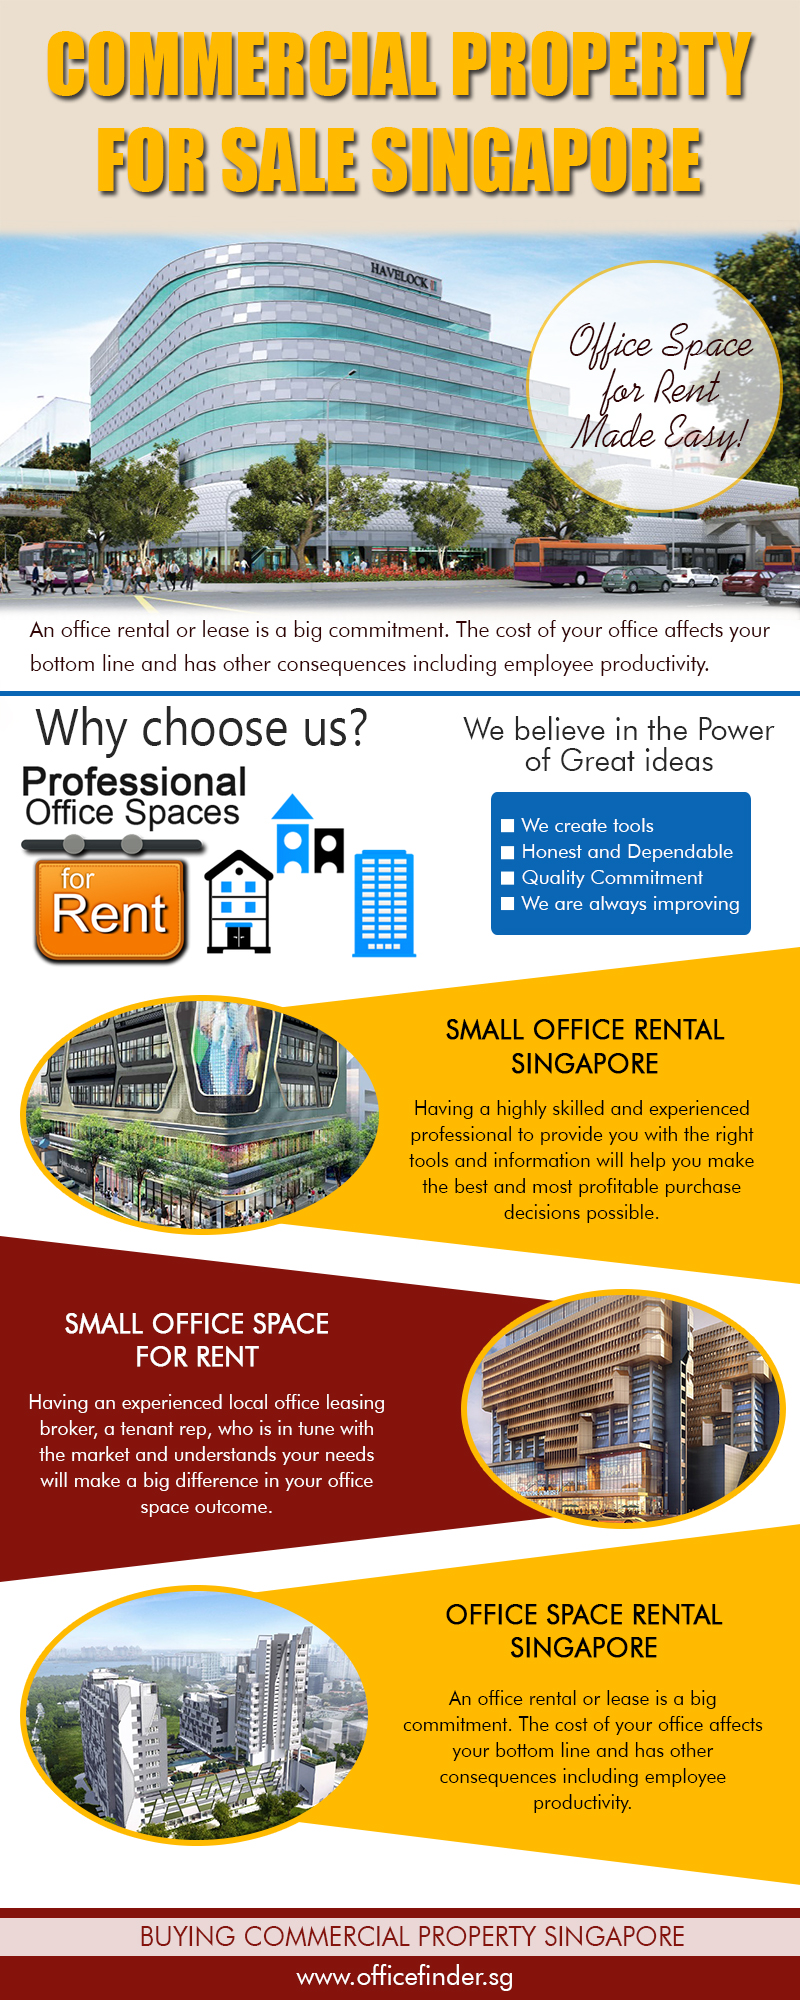 how to buy commercial property in singapore